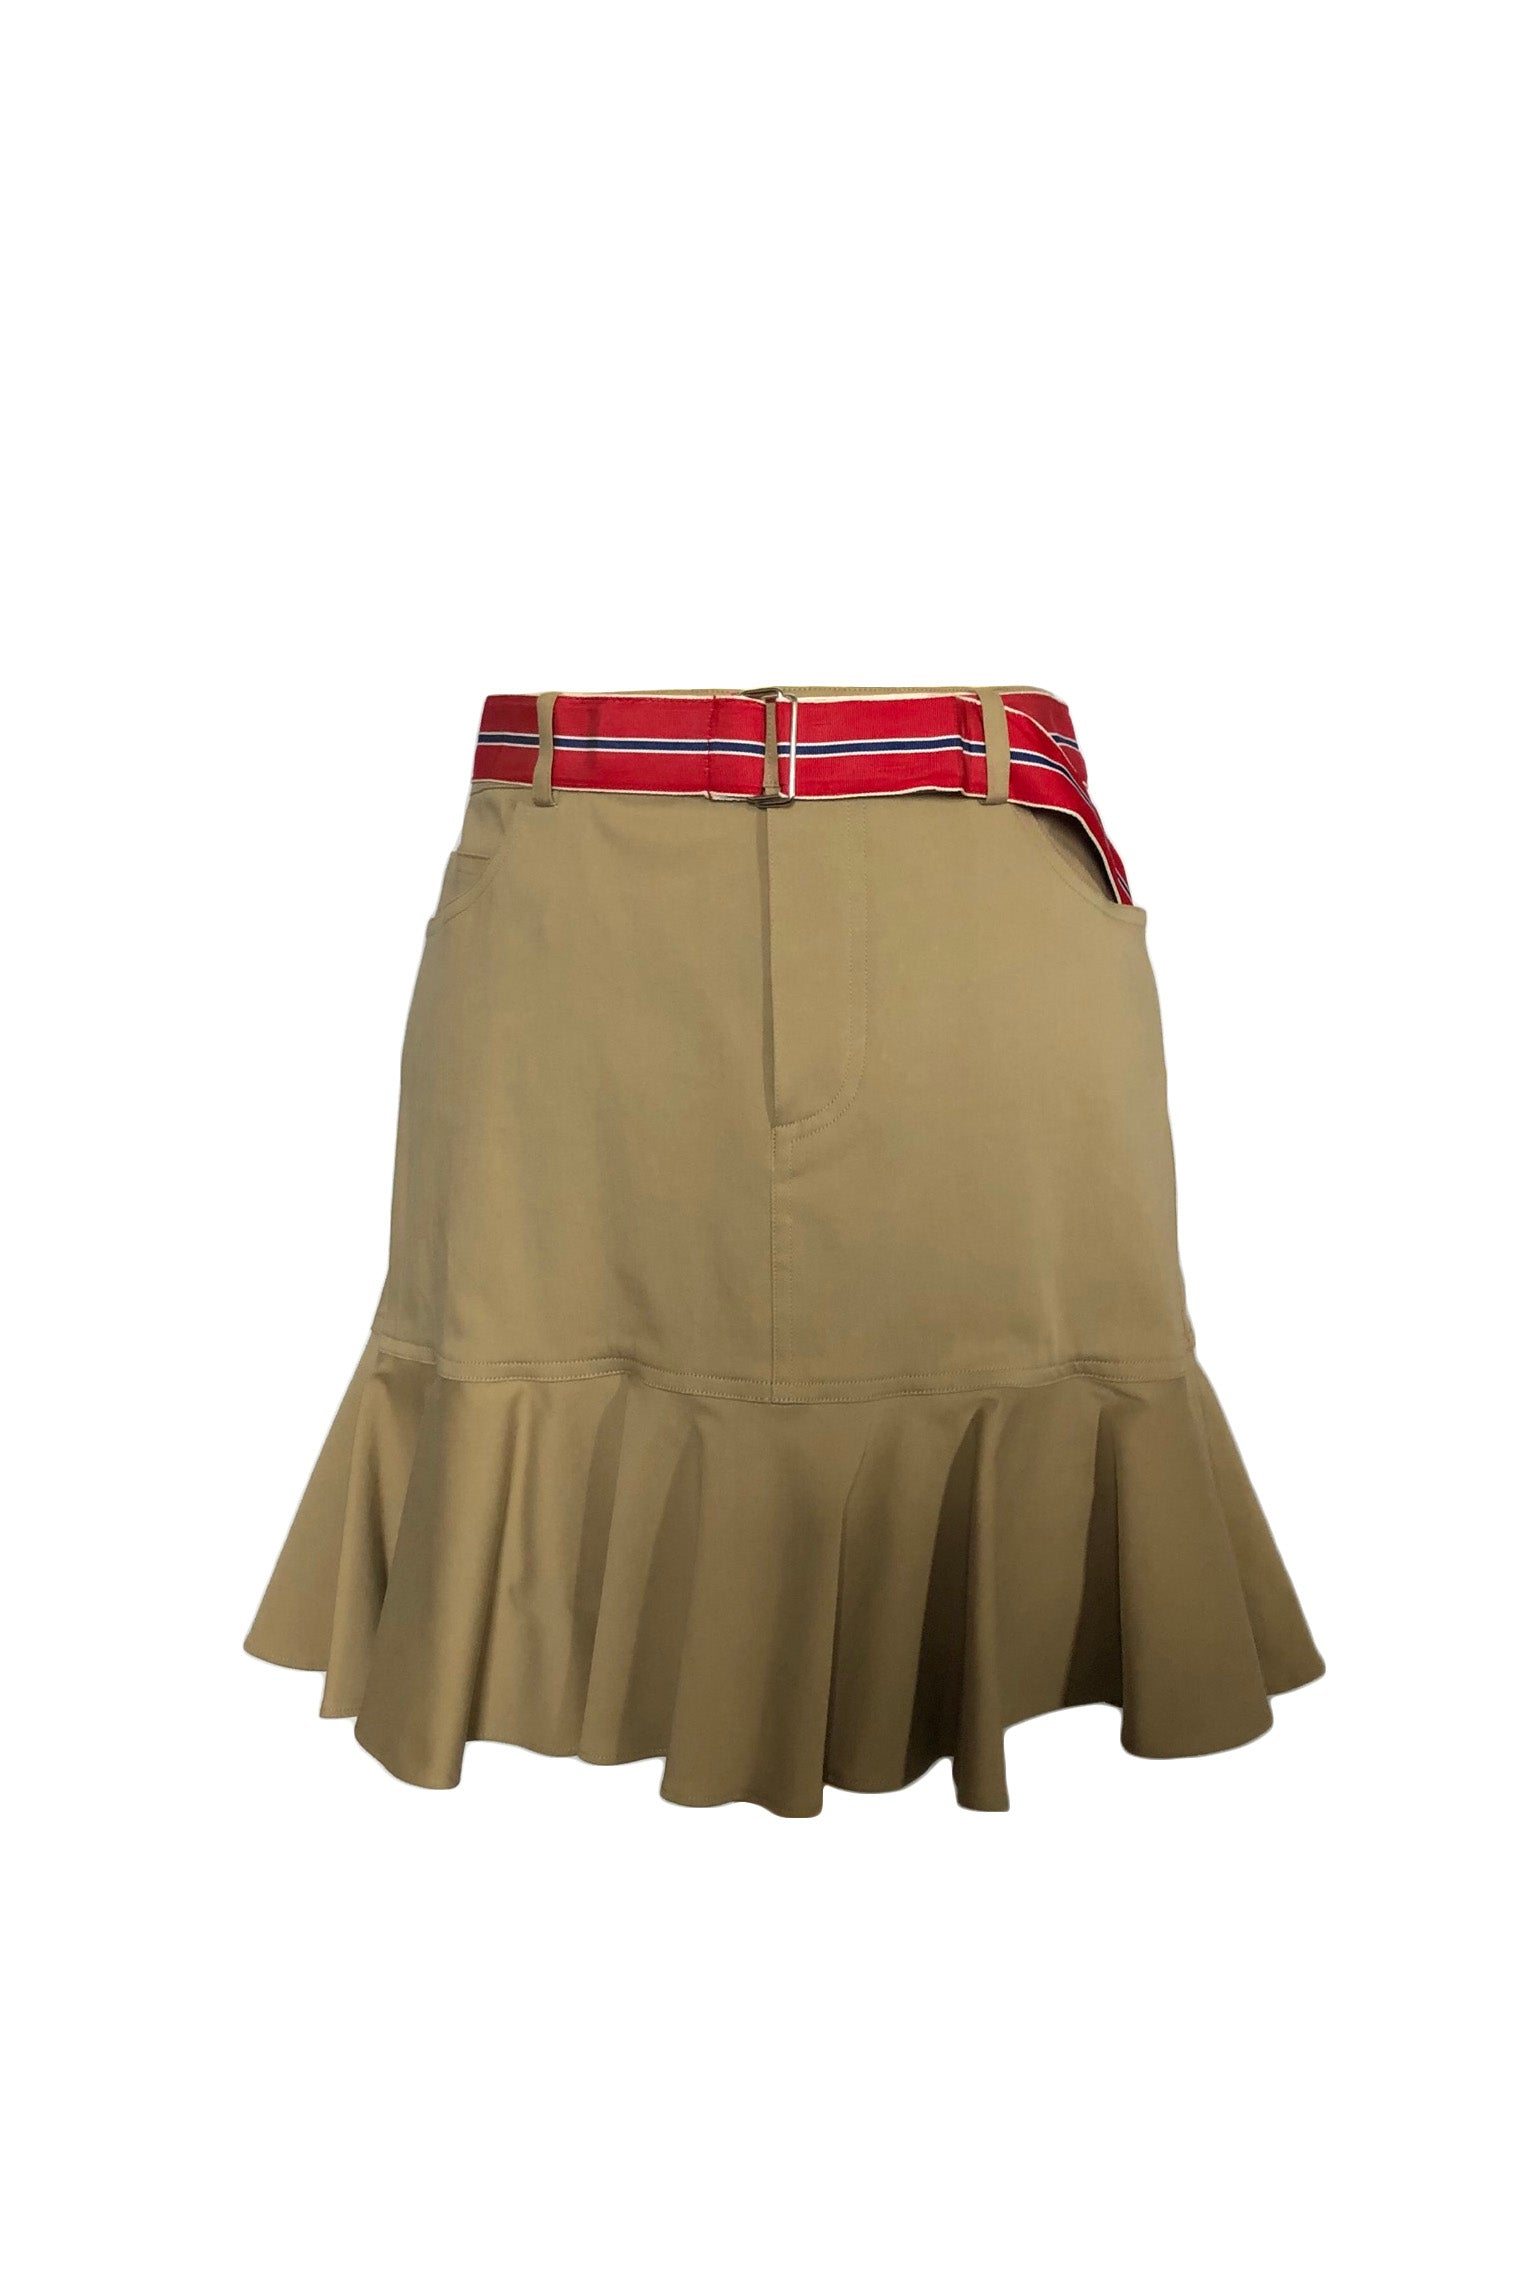 Ralph Lauren Skirt in Beige with Striped Belt Size 40 (EU)